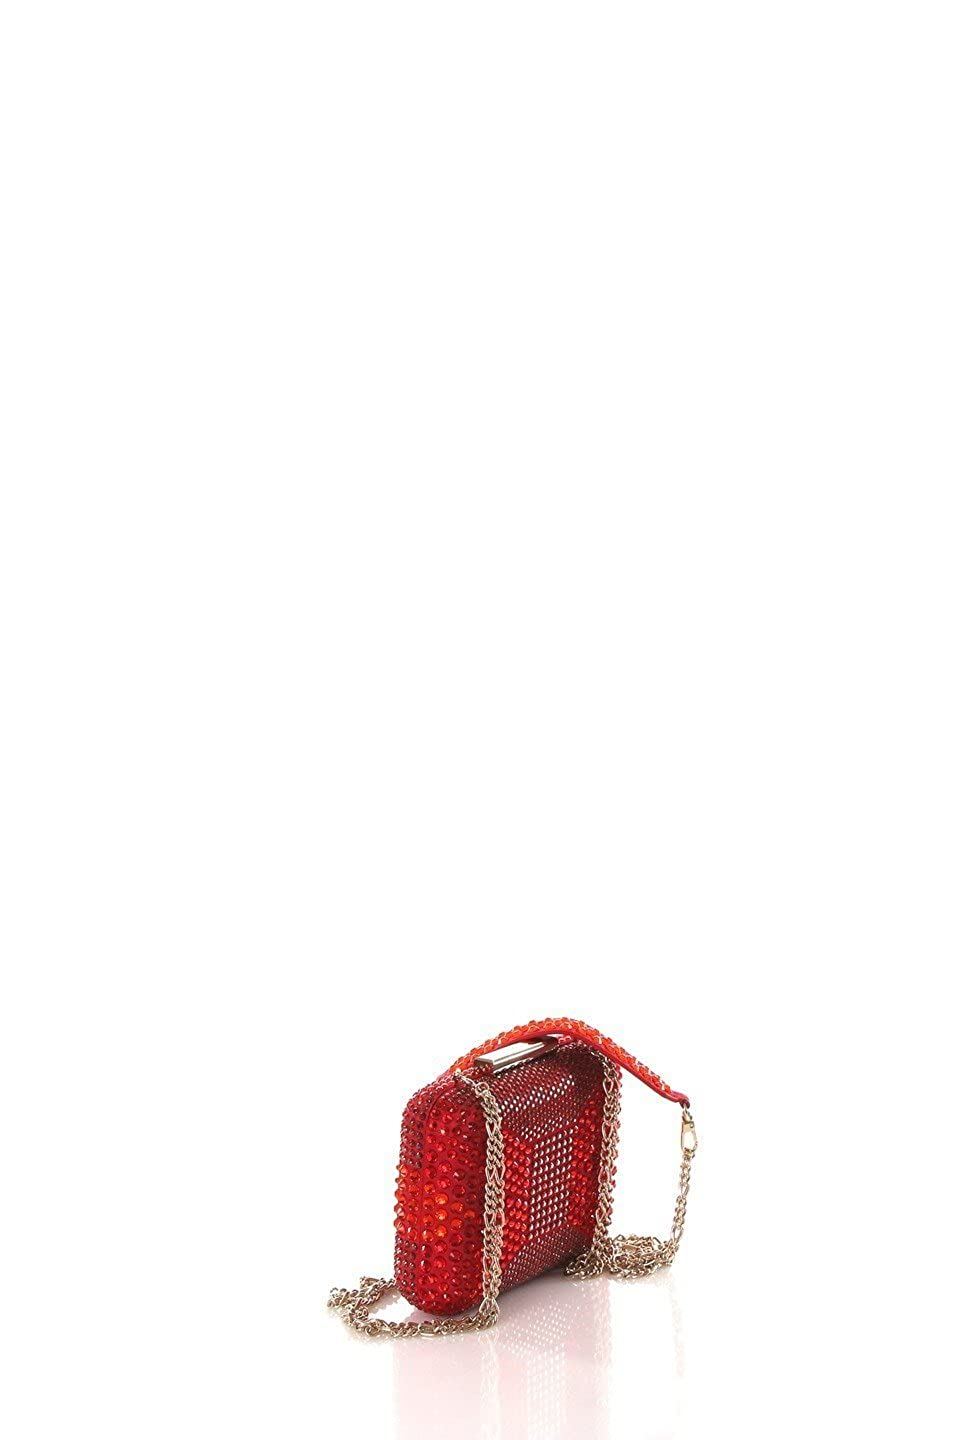 competitive price cc6d0 14bf6 PINKO ANGERS ROSSO BAG Women ROSSO UNI: Amazon.co.uk: Clothing